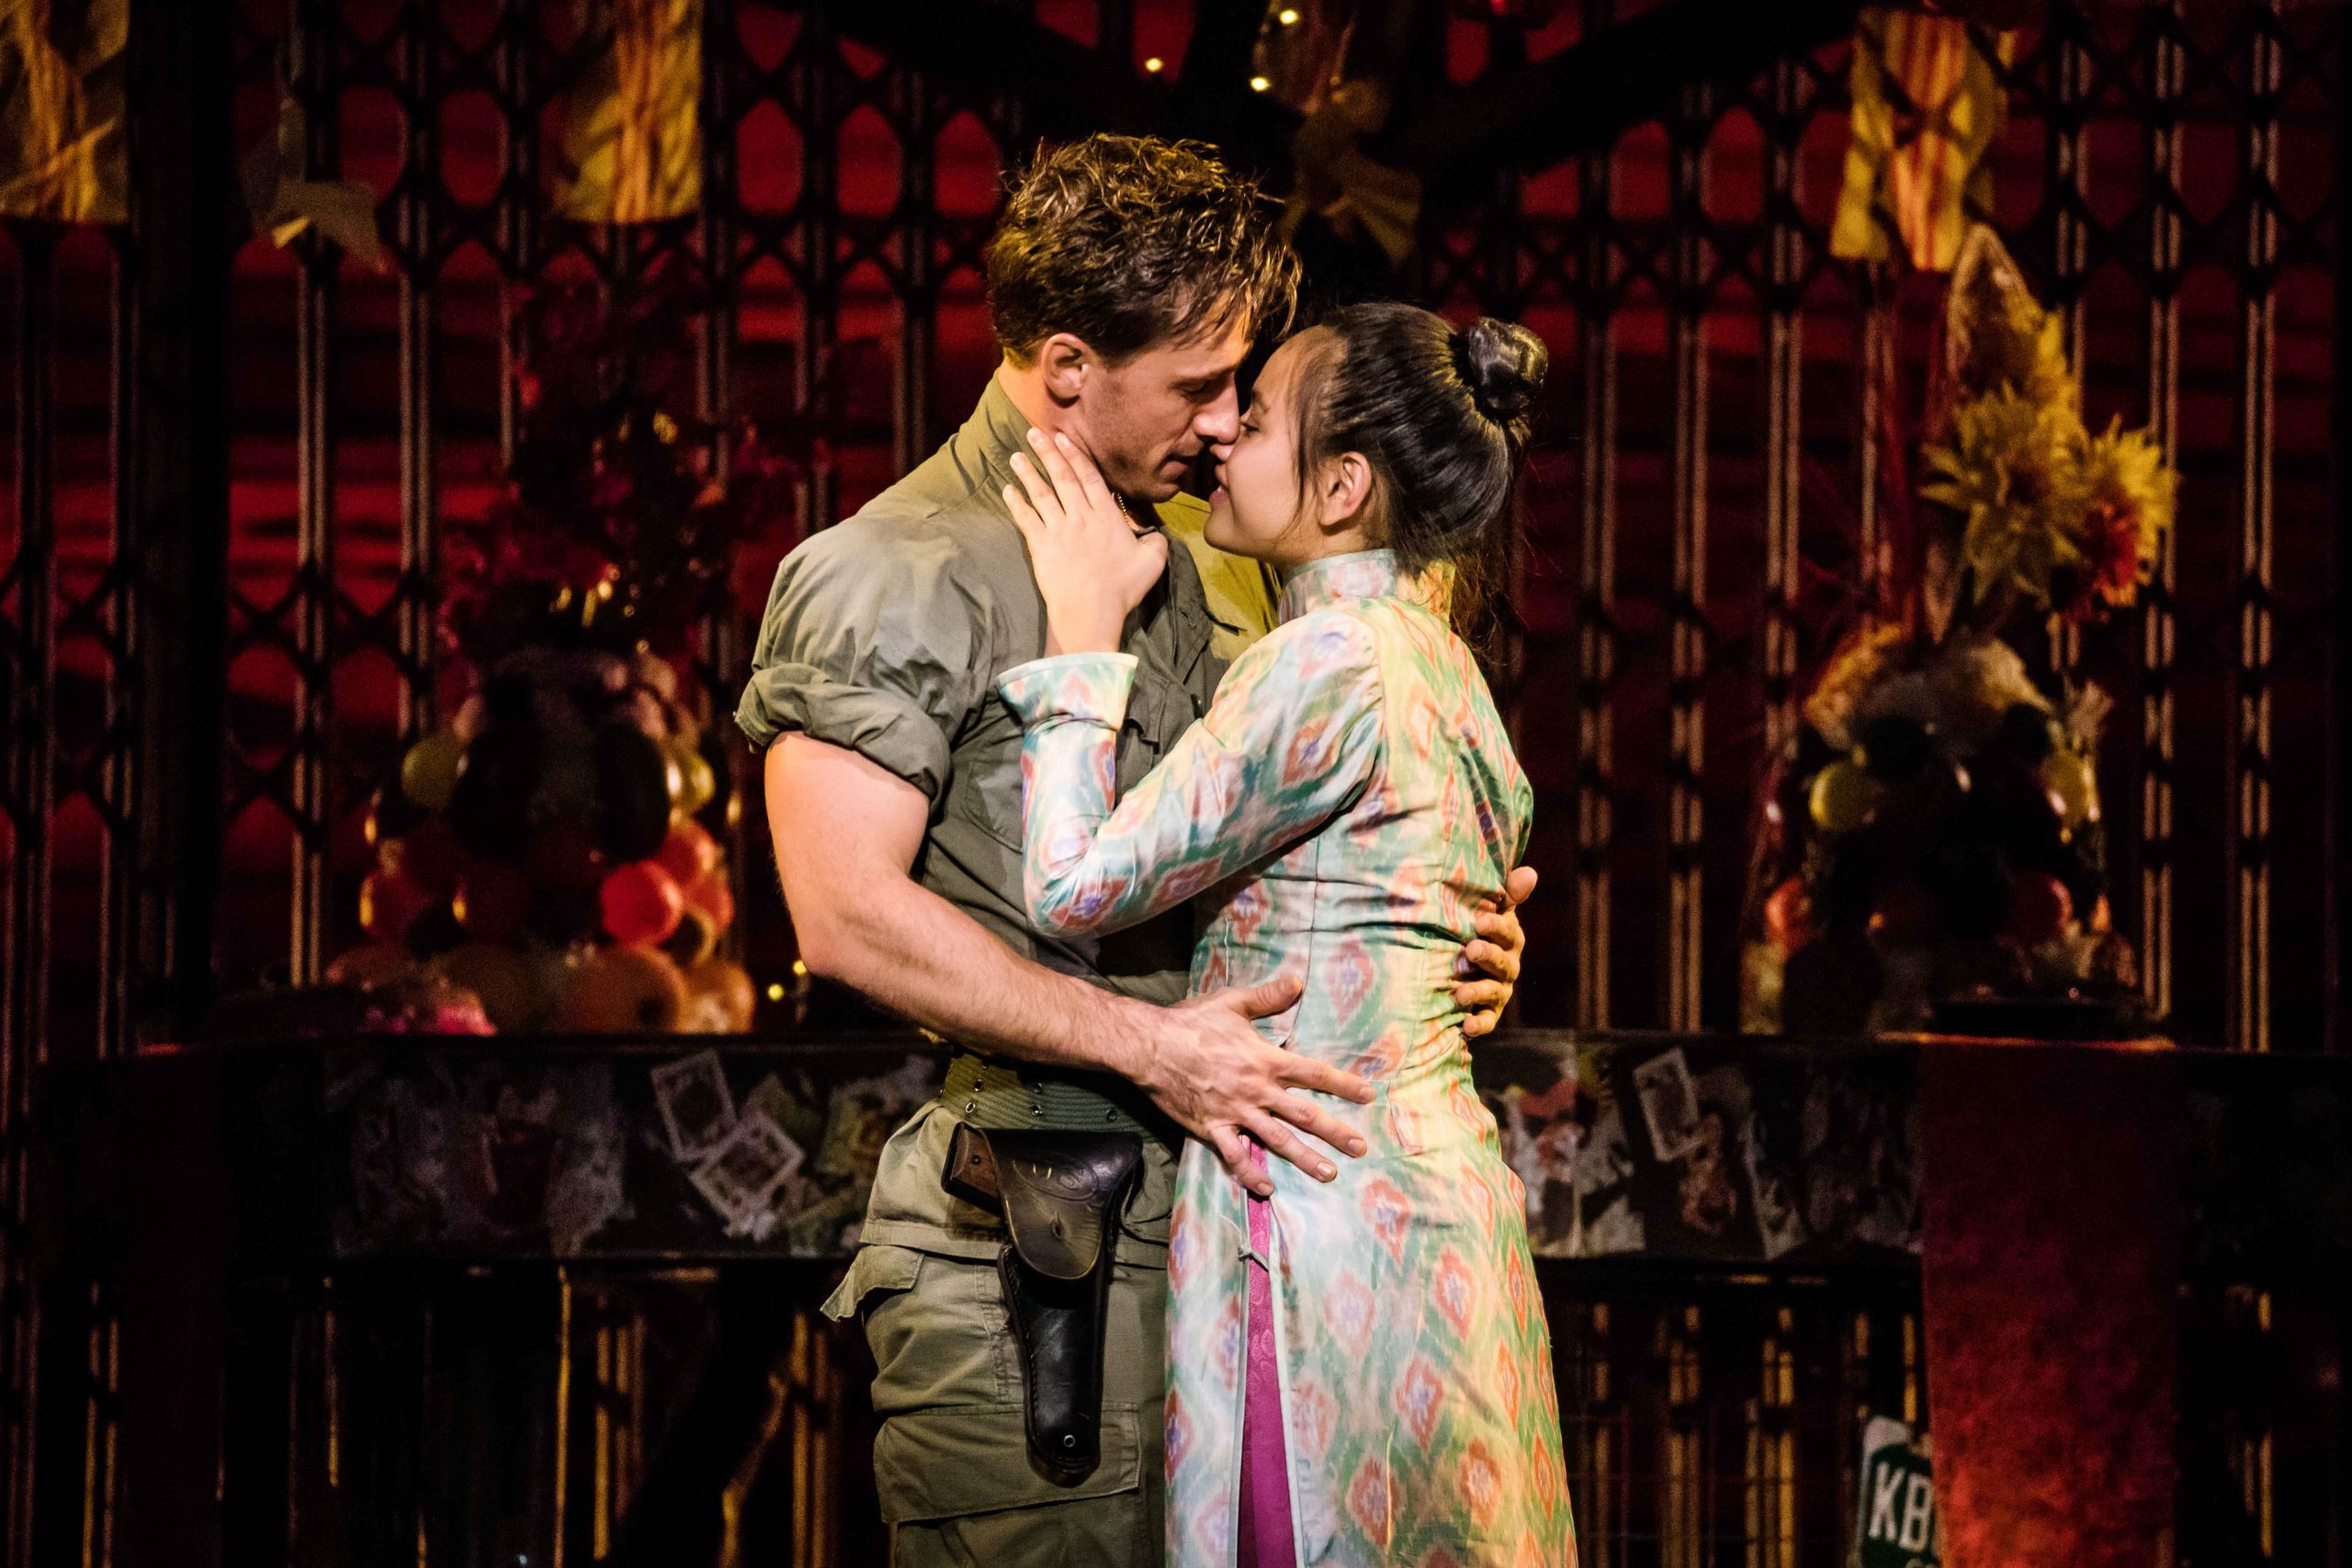 In 'Miss Saigon,' love blooms but does not necessarily conquer all. (photo: Matthew Murphy)